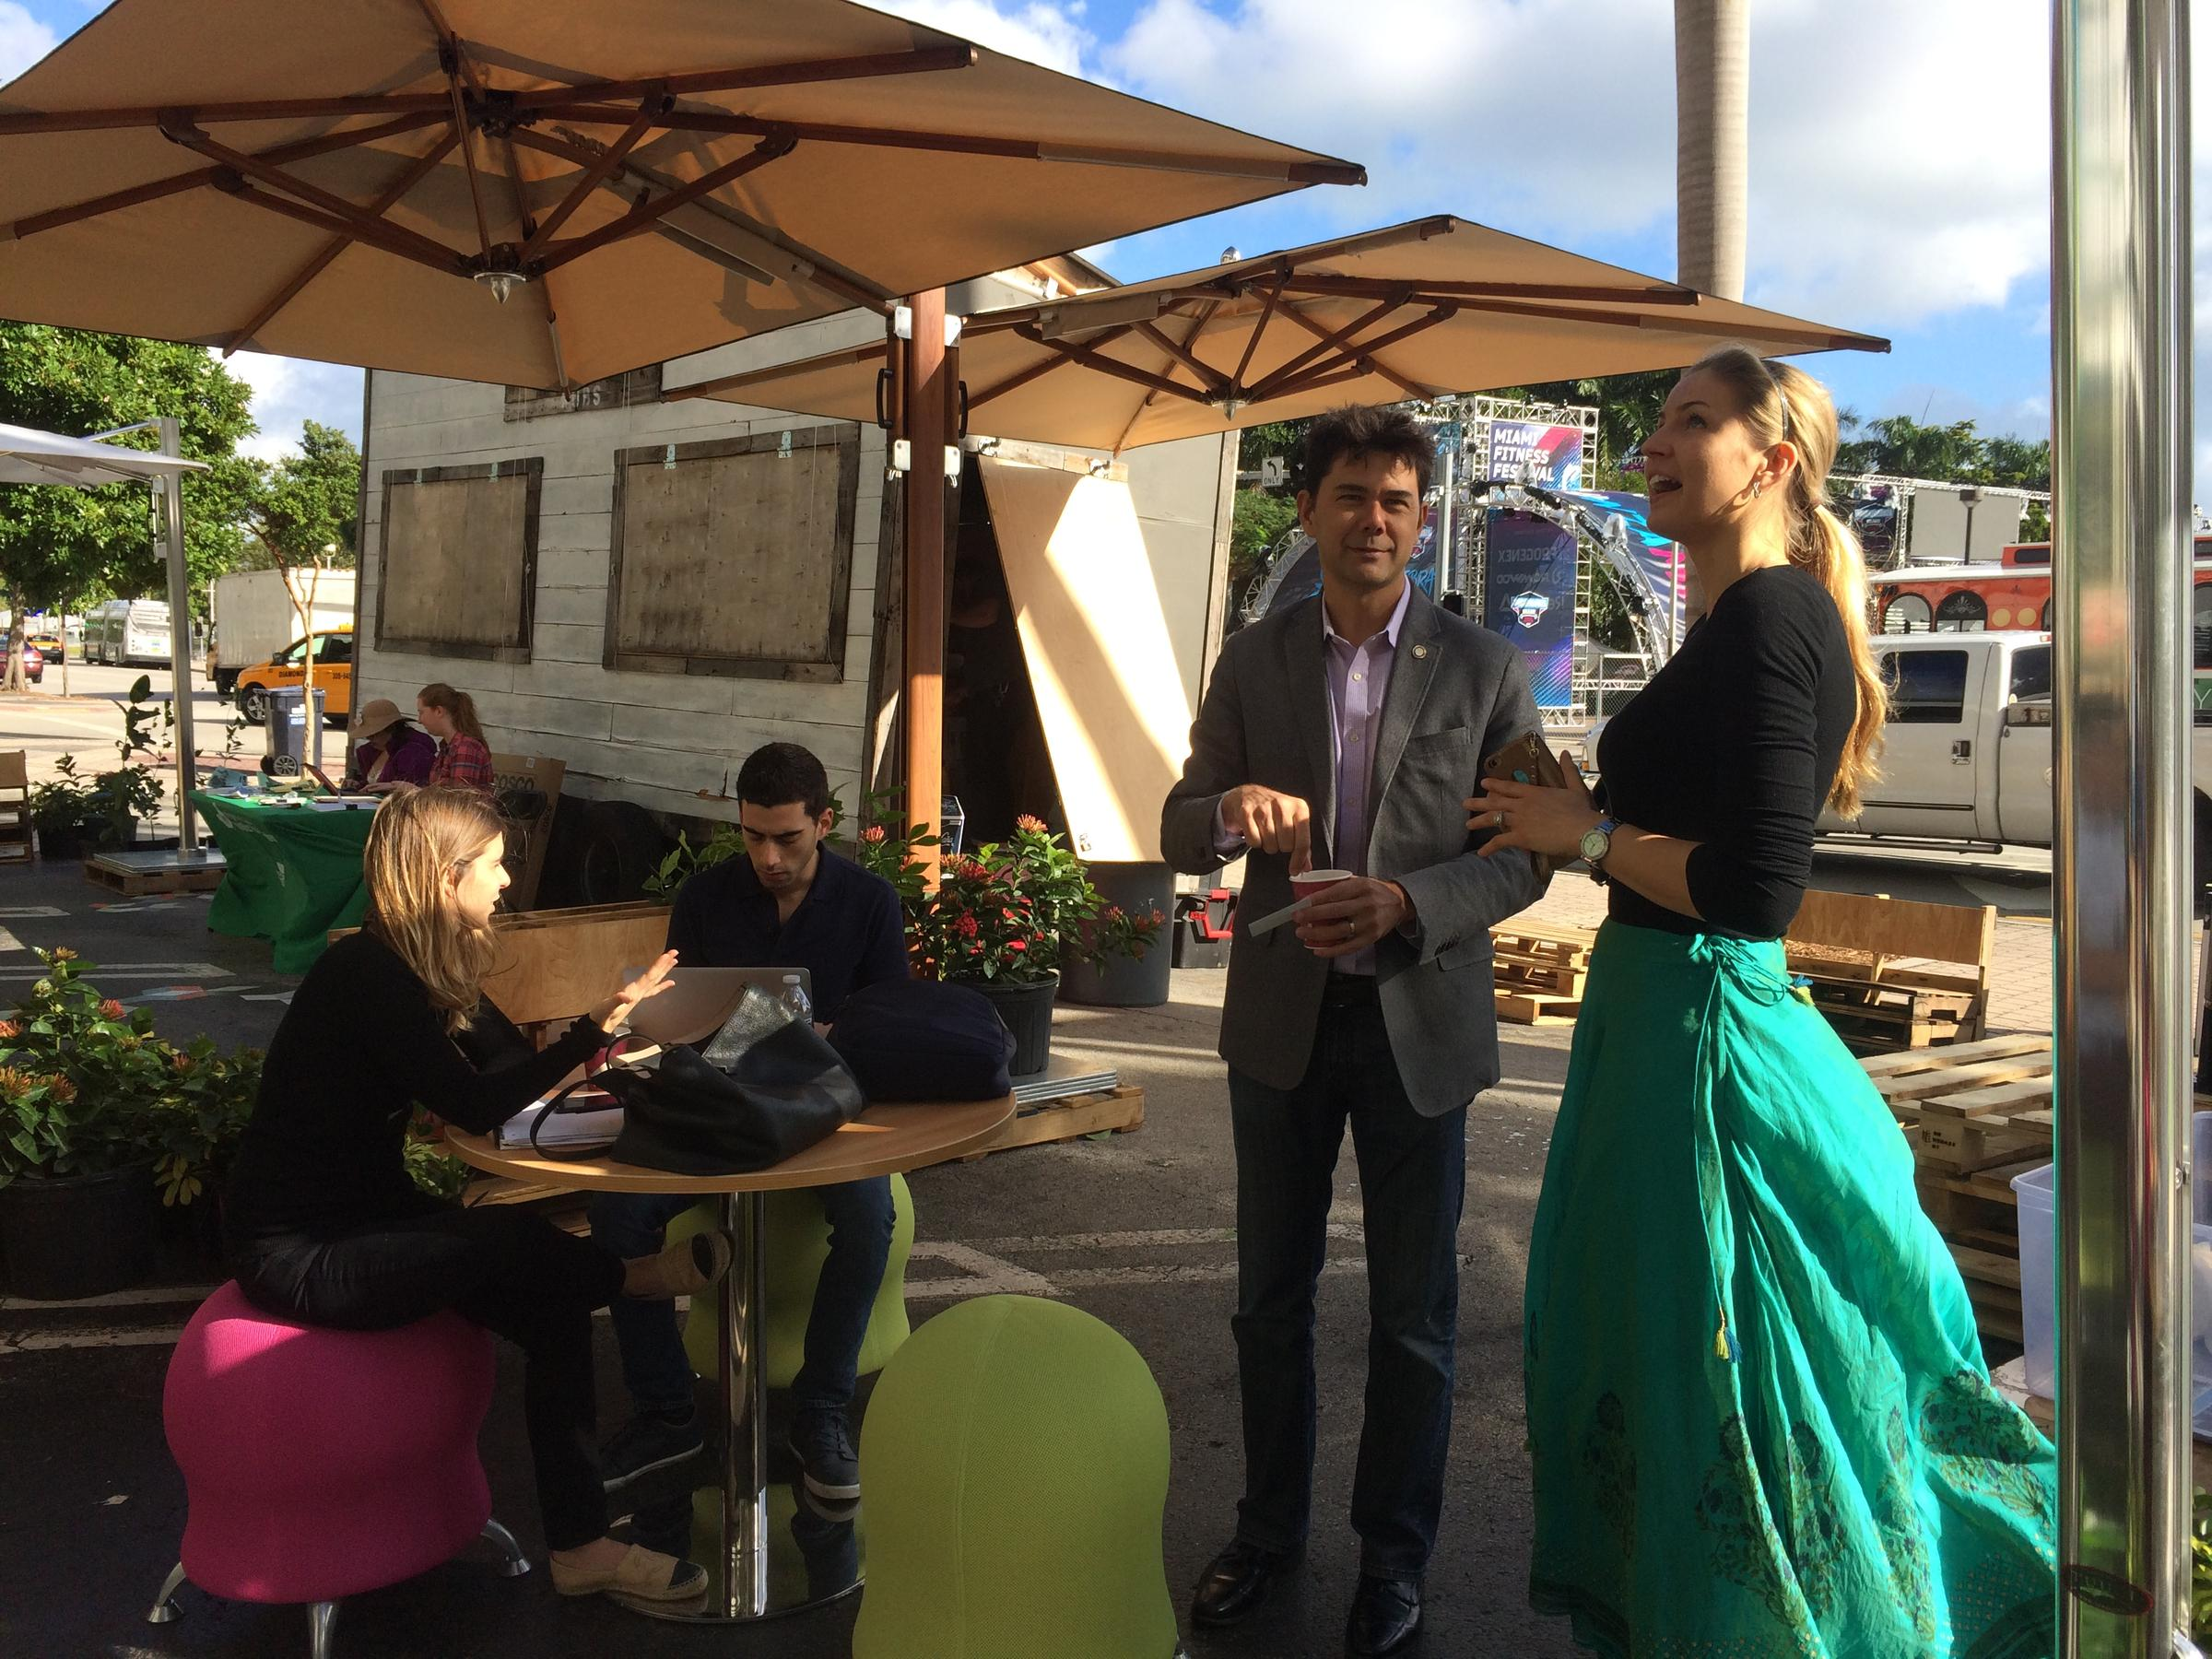 Injecting green space to make way for pedestrians on biscayne ken russell district 2 commissioner for the city of miami and oksana klimovich of synergy workspaces chat at the biscayne green pop up park in downtown xflitez Image collections